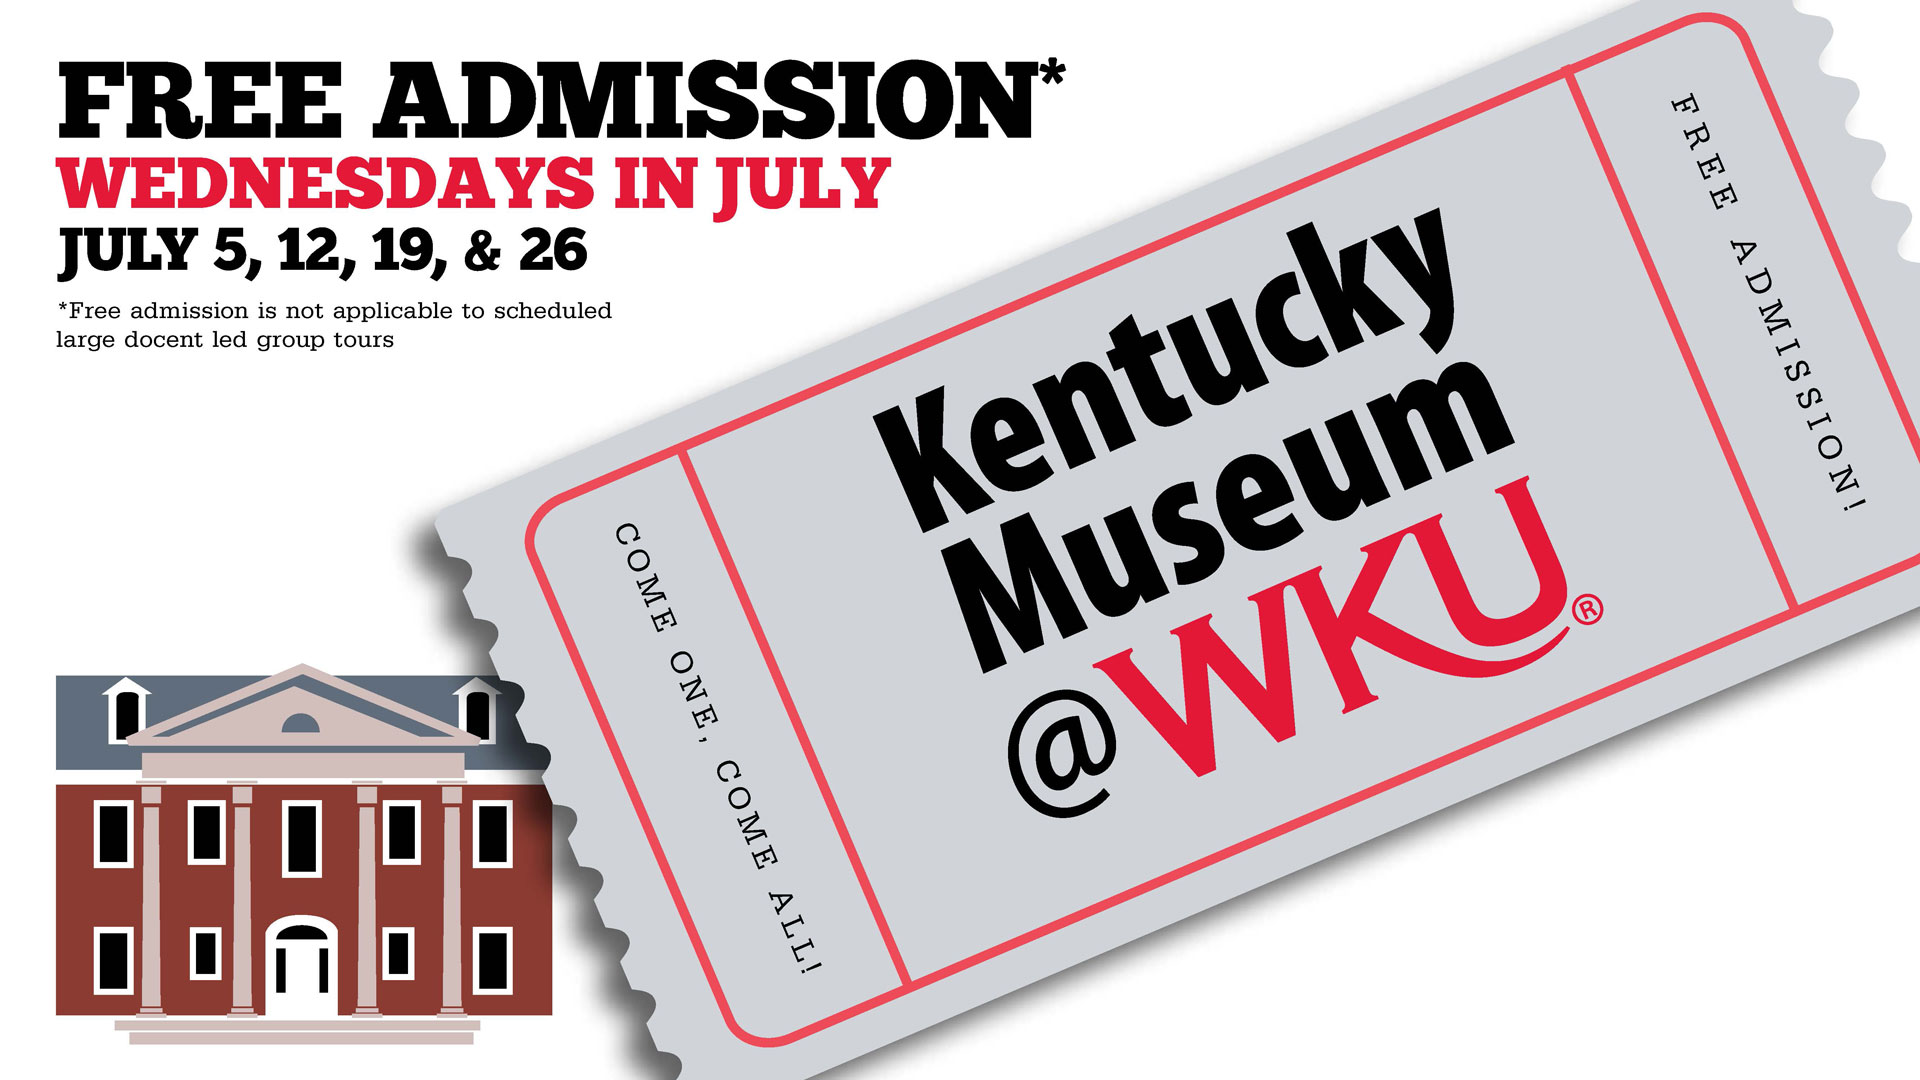 KY-Museum-Free-Wednesdays-in-July-Digital-Signage